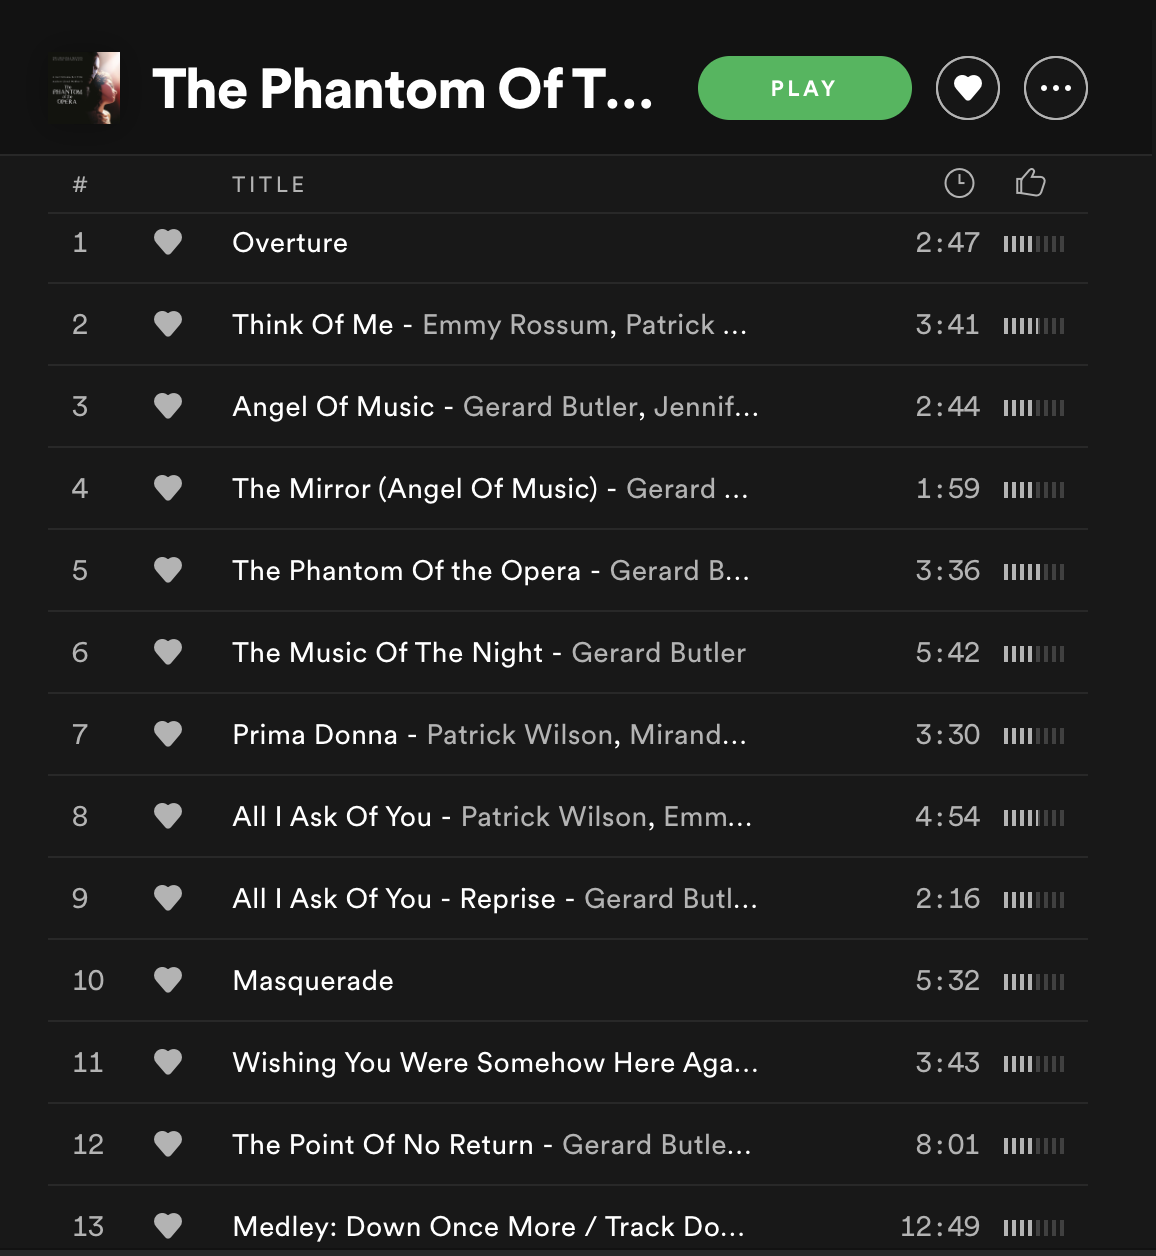 Spotify track list of 13 songs for Phantom of the Opera